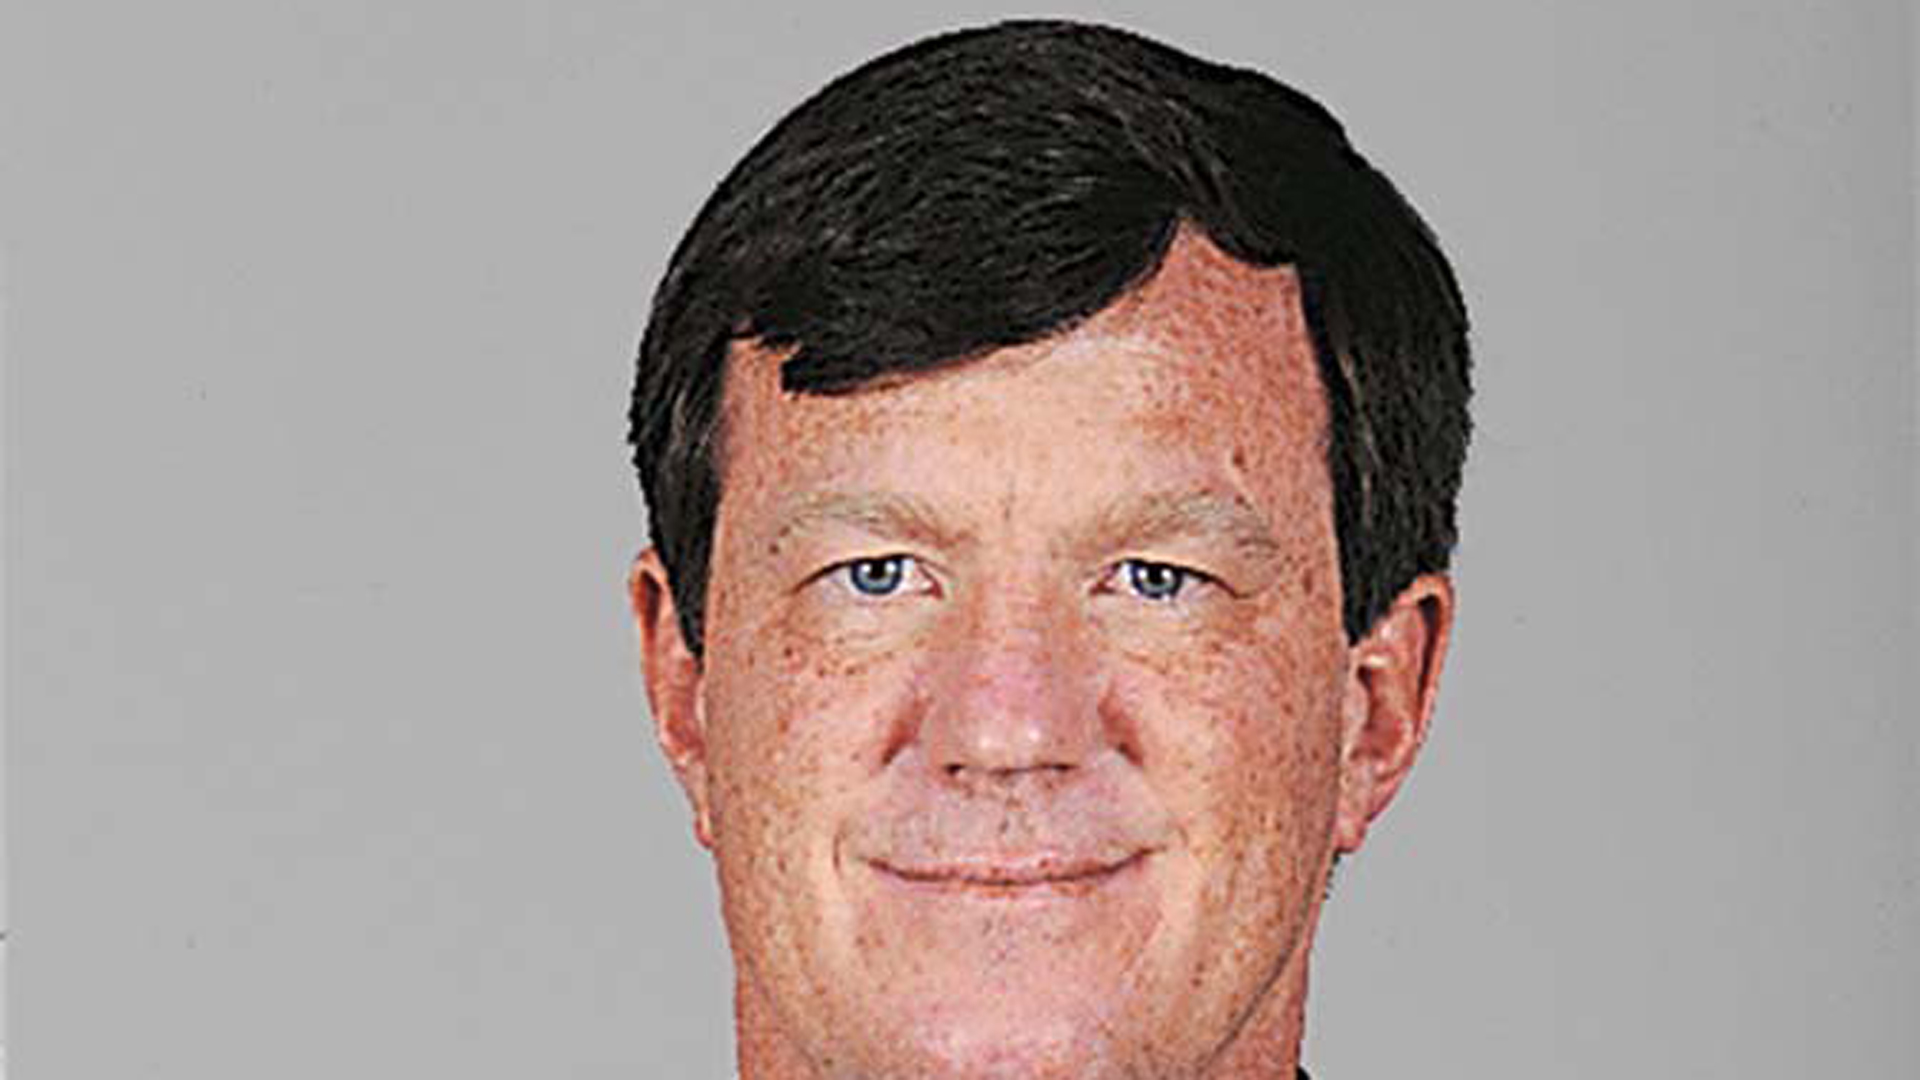 Panthers place interim GM Hurney on leave after harassment claims surface